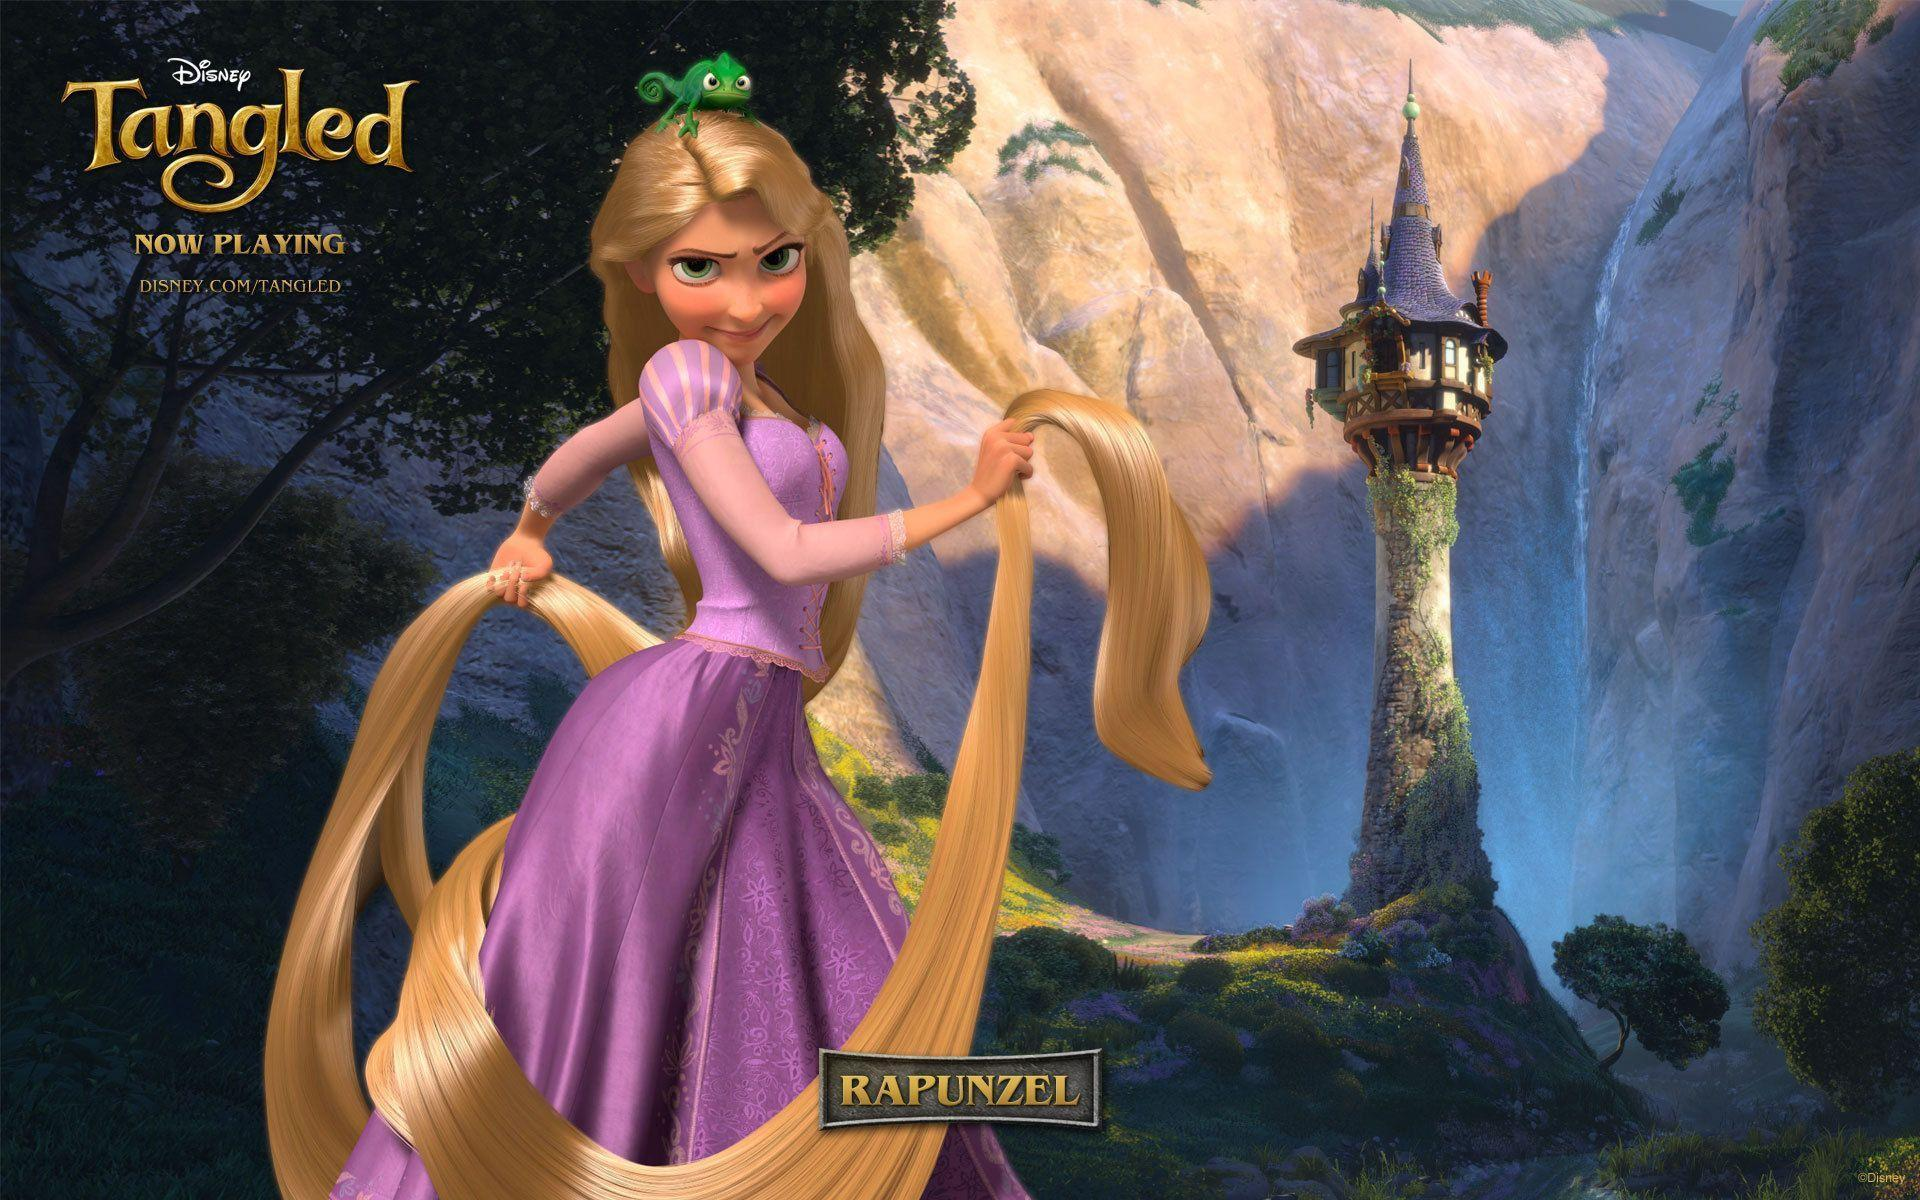 Rapunzel Wallpaper 2 - princess rapunzel Wallpaper (18184776) - Fanpop